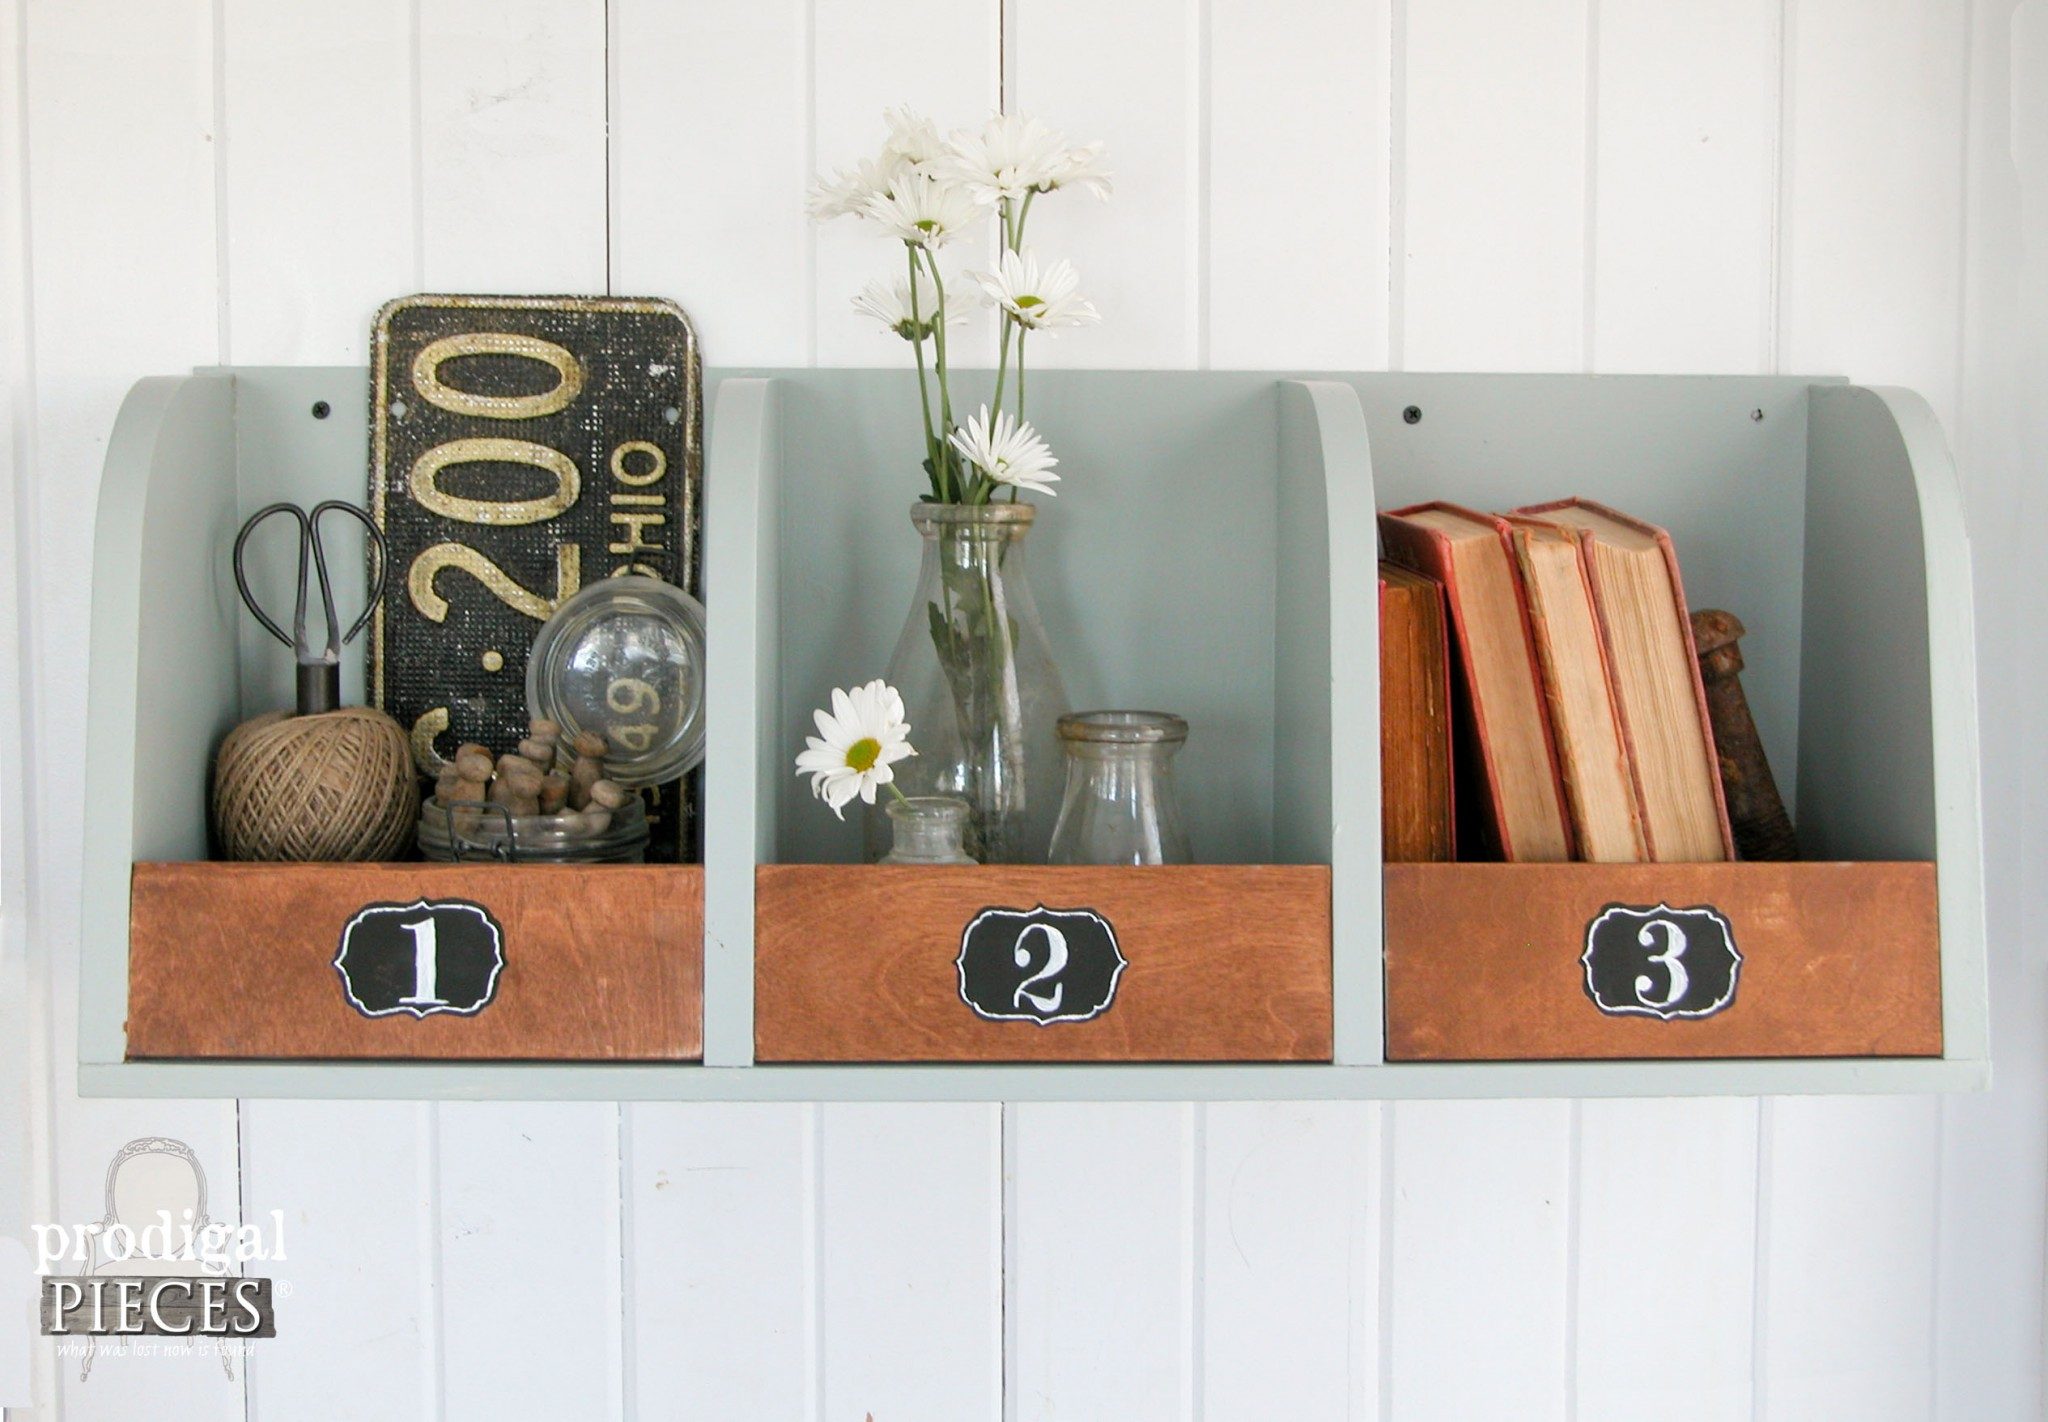 Repurposed Storage Bins Made from Kitchen Shelf by Prodigal Pieces | www.prodigalpieces.com